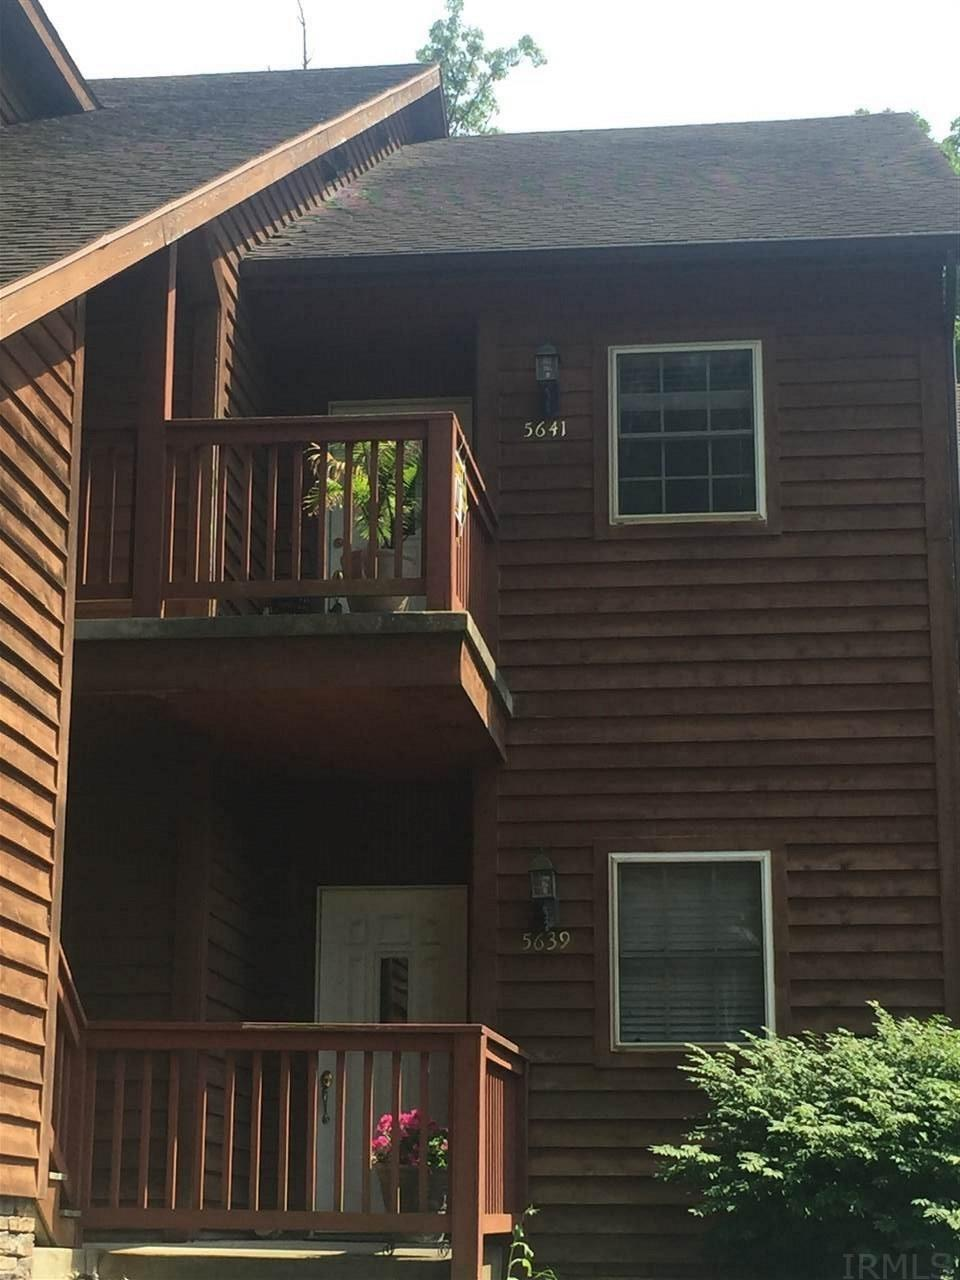 Enjoy the privacy and seclusion of this 3br/2ba condo in Arbor Valley. This vacation like setting is close to west side amenities, minutes from down town, USI, and Mt Vernon. Desirable end unit features : new hardwood floors 2014, new furnace and ac 2014, updated paint and lighting, and additional attic insulation. Main level has cozy kitchen with cherry cabinets, tile floor, & complete with appliances. Just off the kitchen is large open living room and dining area with vaulted ceilings, floor to ceiling stacked stone gas fireplace with custom mantel. This end unit has additional windows that welcome additional light . Just off the living room you find the master bedroom with master bath with double vanity, linen closet and tub/shower combo. Down the hall is 2nd bedroom and additional full bath. Upstairs you find a third bedroom, hall storage closet and access to attic storage. All bedrooms have large walk in closets. Just off the living room is a covered deck with lake views, space for patio table, room to grow herbs and vegetables, and to grill. Inside the condo you can access garage by elevator which you share with 1 other unit . Additional access from outside or stairs lending down to garage. Garage is one vehicle wide and deep enough for 2 vehicles.Plenty or room or additional storage in garage. Additional parking available. Laundry located in hall and washer and dryer included. Condo association and monthly fees. Fees include: water, trash pick up (can provided), outside lawn and landscape maintenance, outside electrical, outside building maintenance, and pest control quarterly. Average 12 month vectren = $136.00